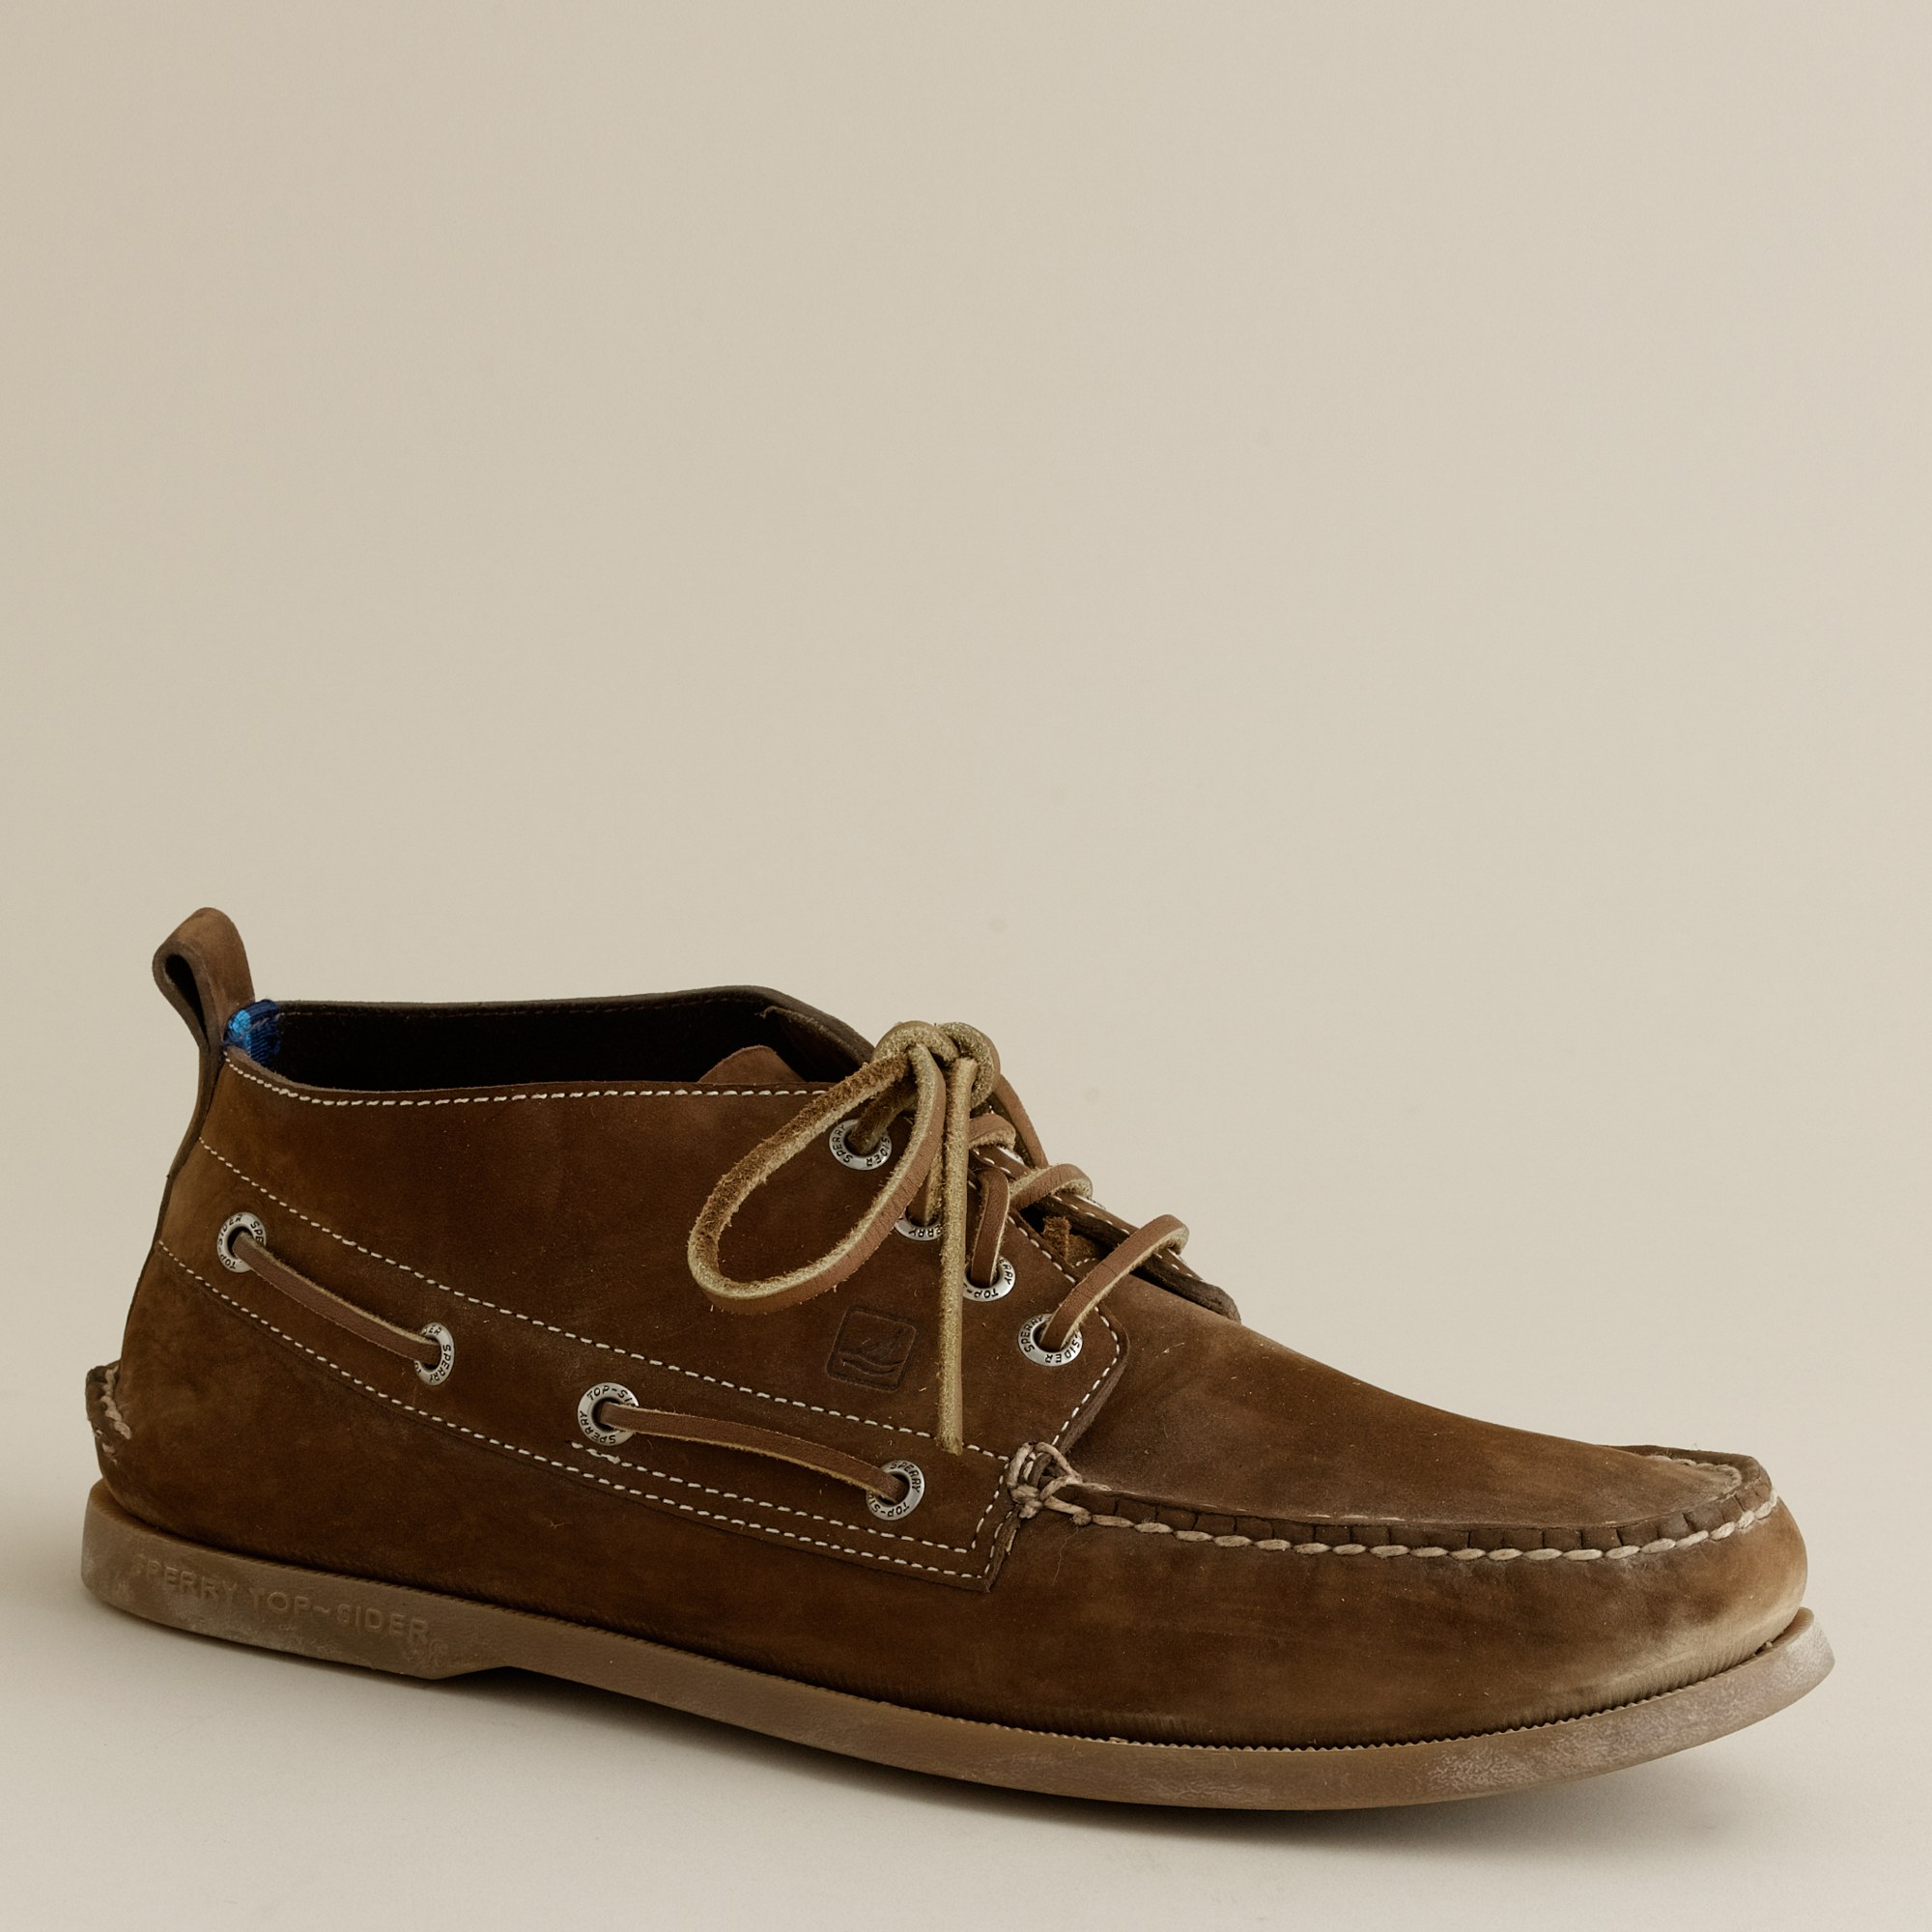 Beautiful Sperry Top-sider Gold Norfolk Chukka Boots In Brown For Men | Lyst